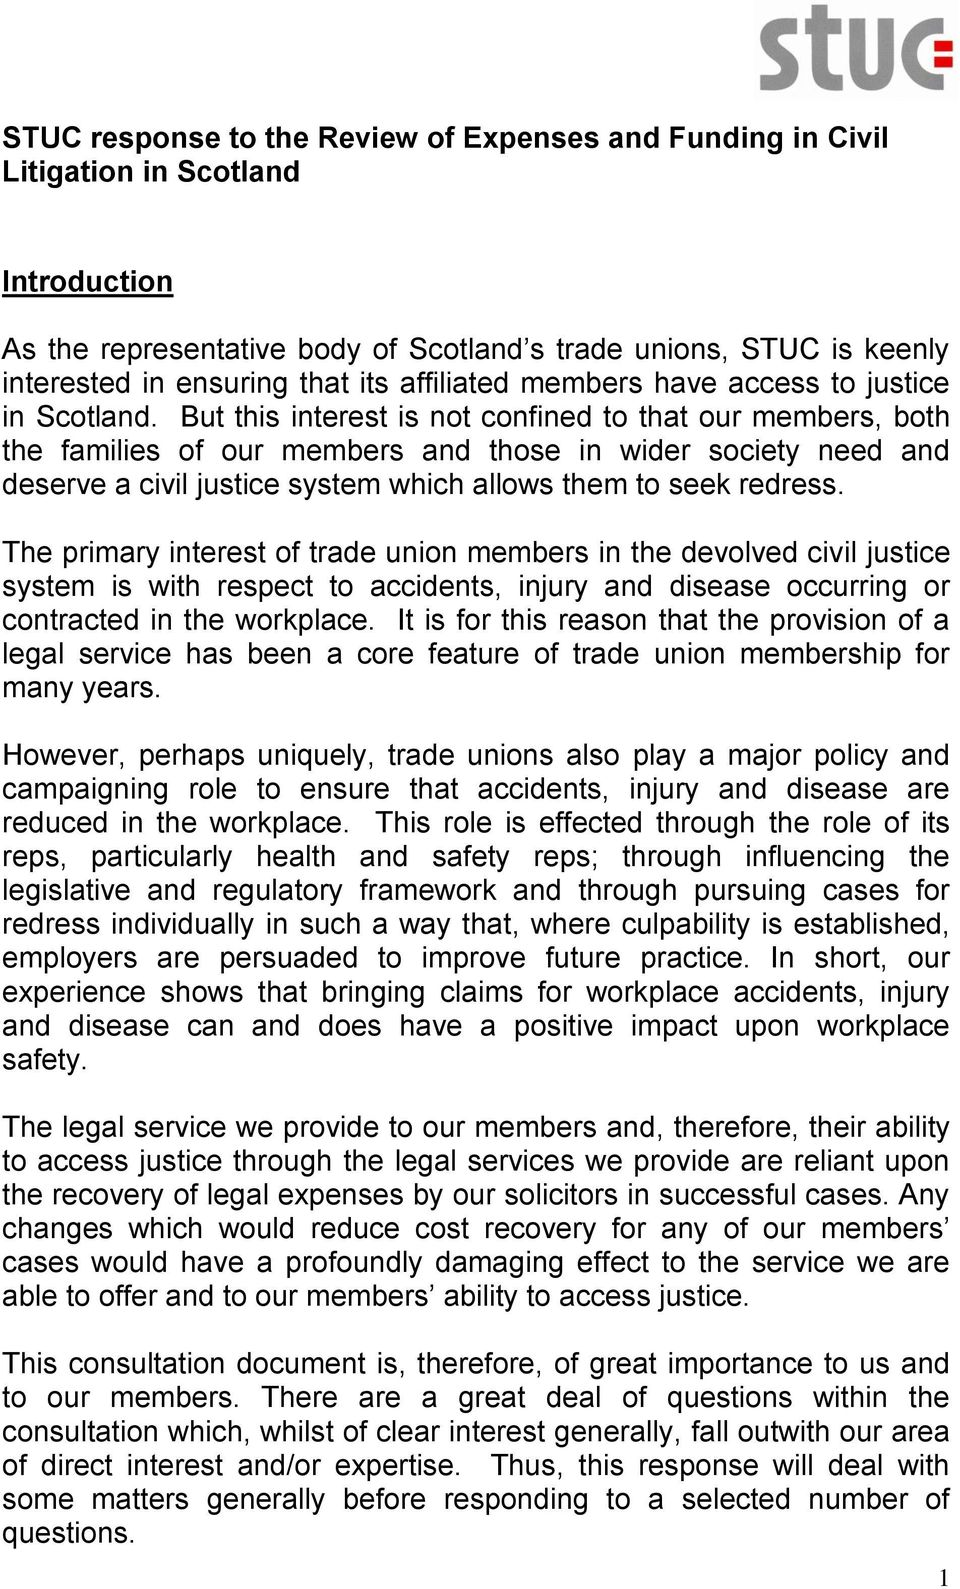 But this interest is not confined to that our members, both the families of our members and those in wider society need and deserve a civil justice system which allows them to seek redress.